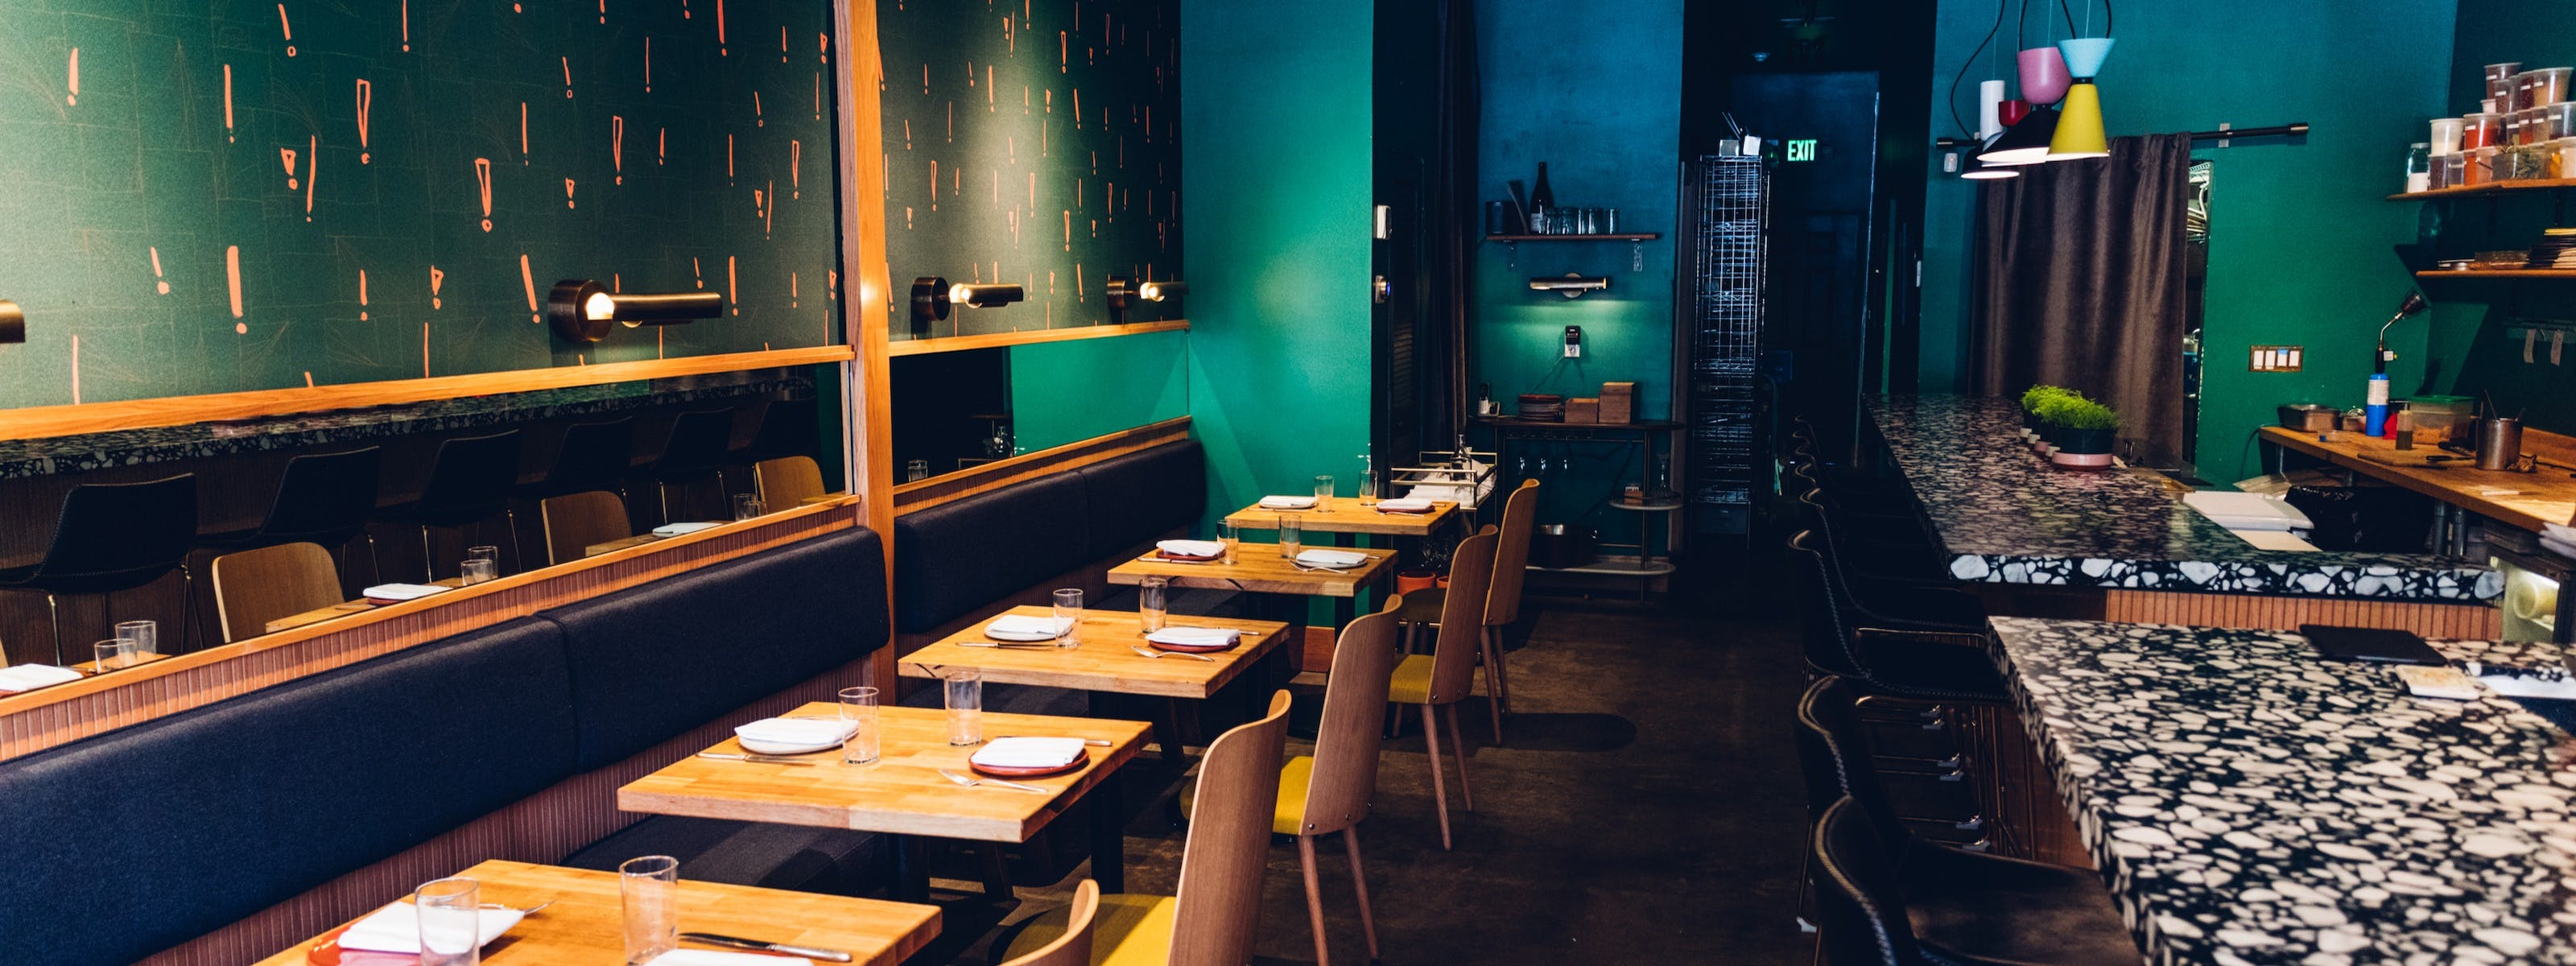 The Infatuation's Favorite New Restaurants Of 2019 - The Infatuation